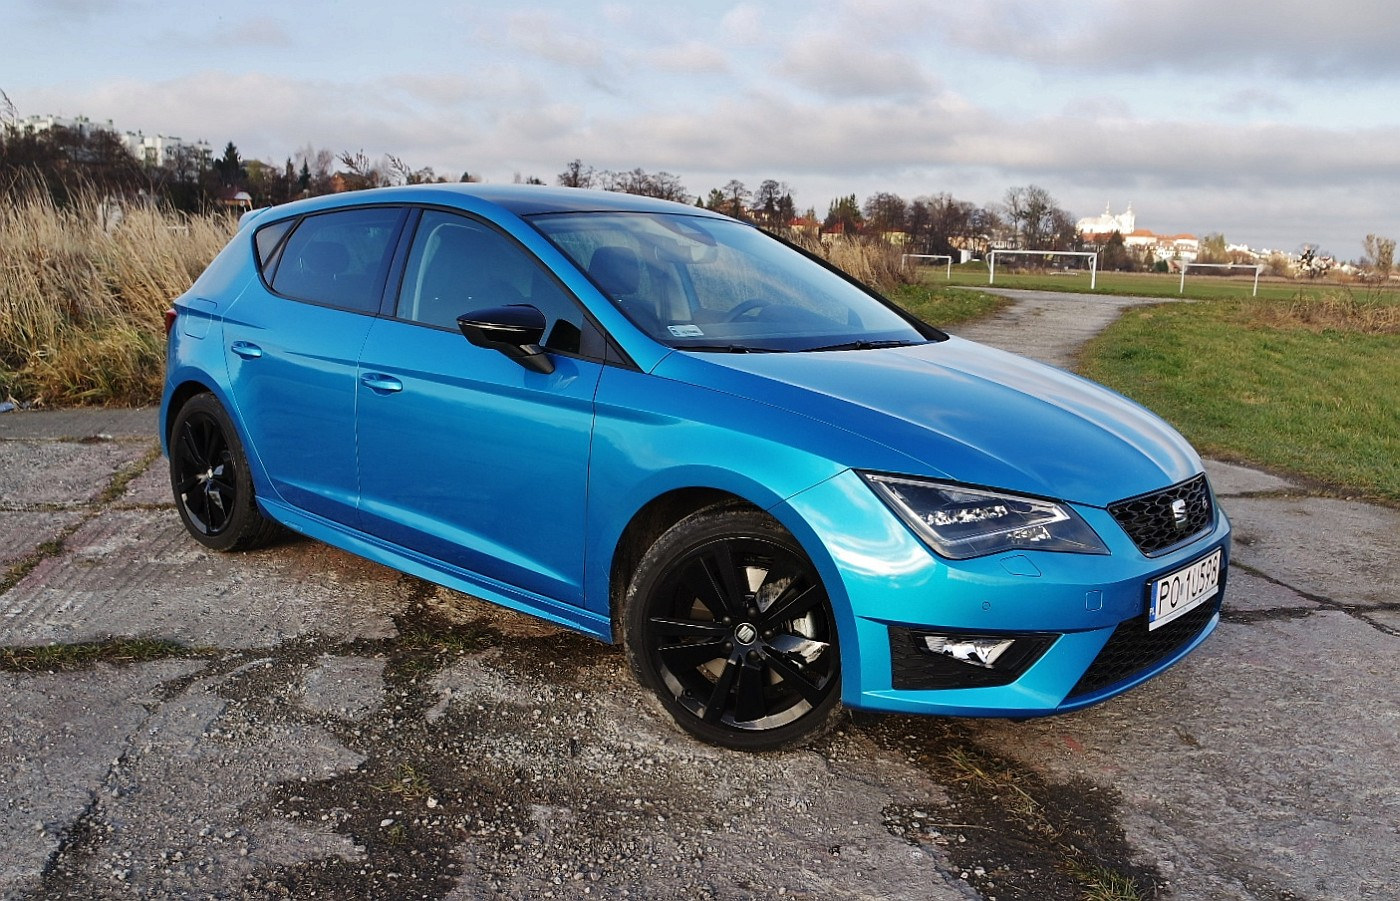 seat leon 1 8 tsi dsg fr inny wymiar volkswagena namasce. Black Bedroom Furniture Sets. Home Design Ideas